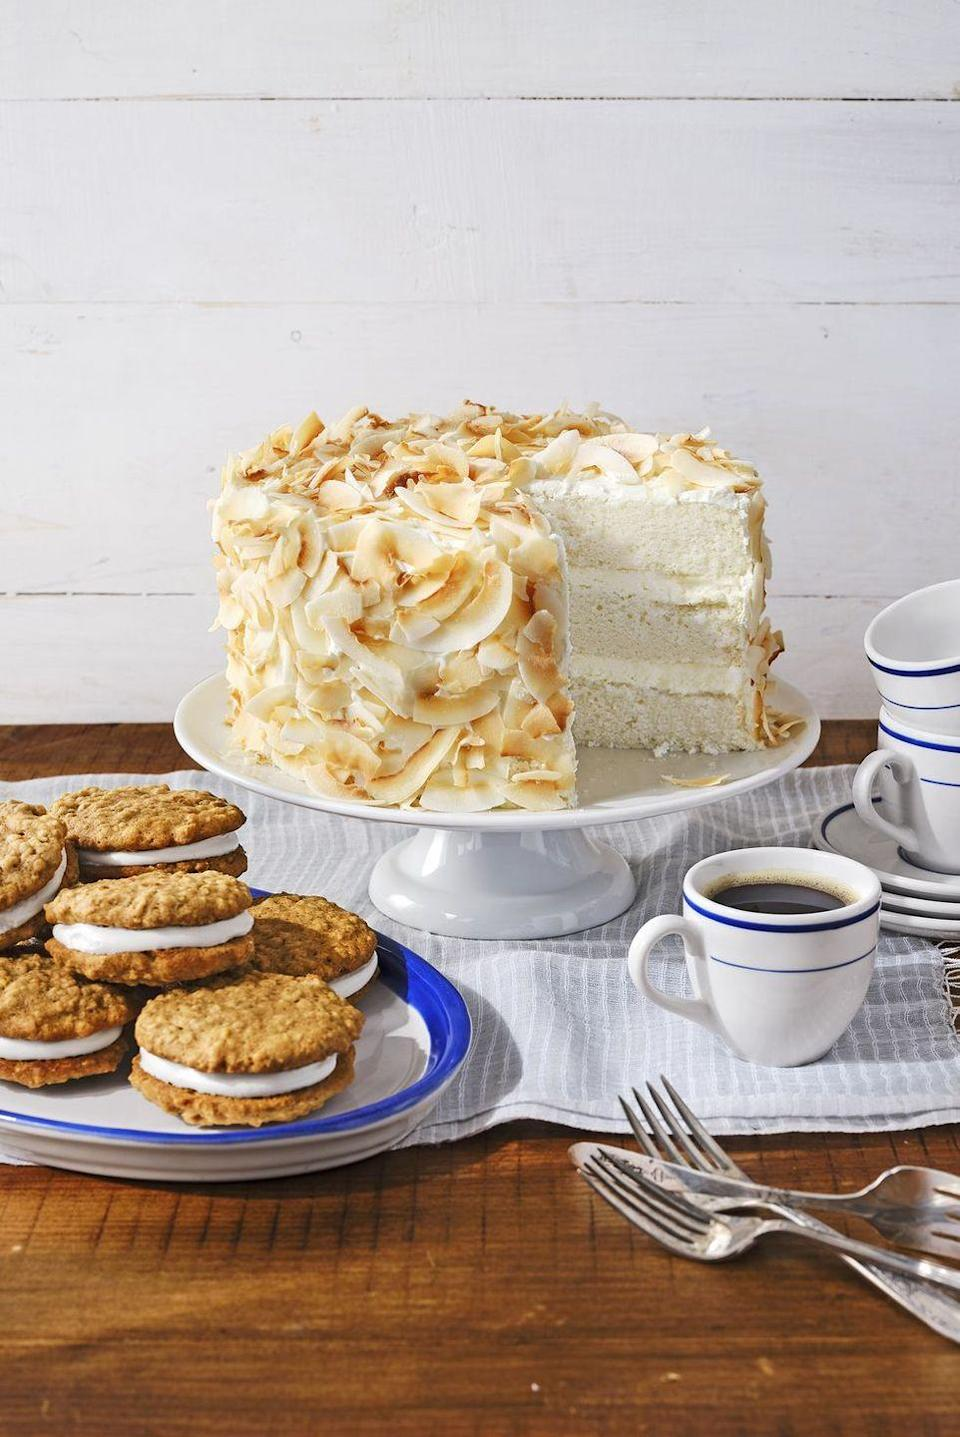 """<p>Check the box on """"white"""" for your red, white, and blue celebration: airy angel food cake, cream cheese frosting, and coconut flakes make the prettiest monochromatic dessert.</p><p><em><a href=""""https://www.countryliving.com/food-drinks/a30418948/coconut-angel-cake-recipe/"""" rel=""""nofollow noopener"""" target=""""_blank"""" data-ylk=""""slk:Get the recipe from Country Living »"""" class=""""link rapid-noclick-resp"""">Get the recipe from Country Living »</a></em></p>"""